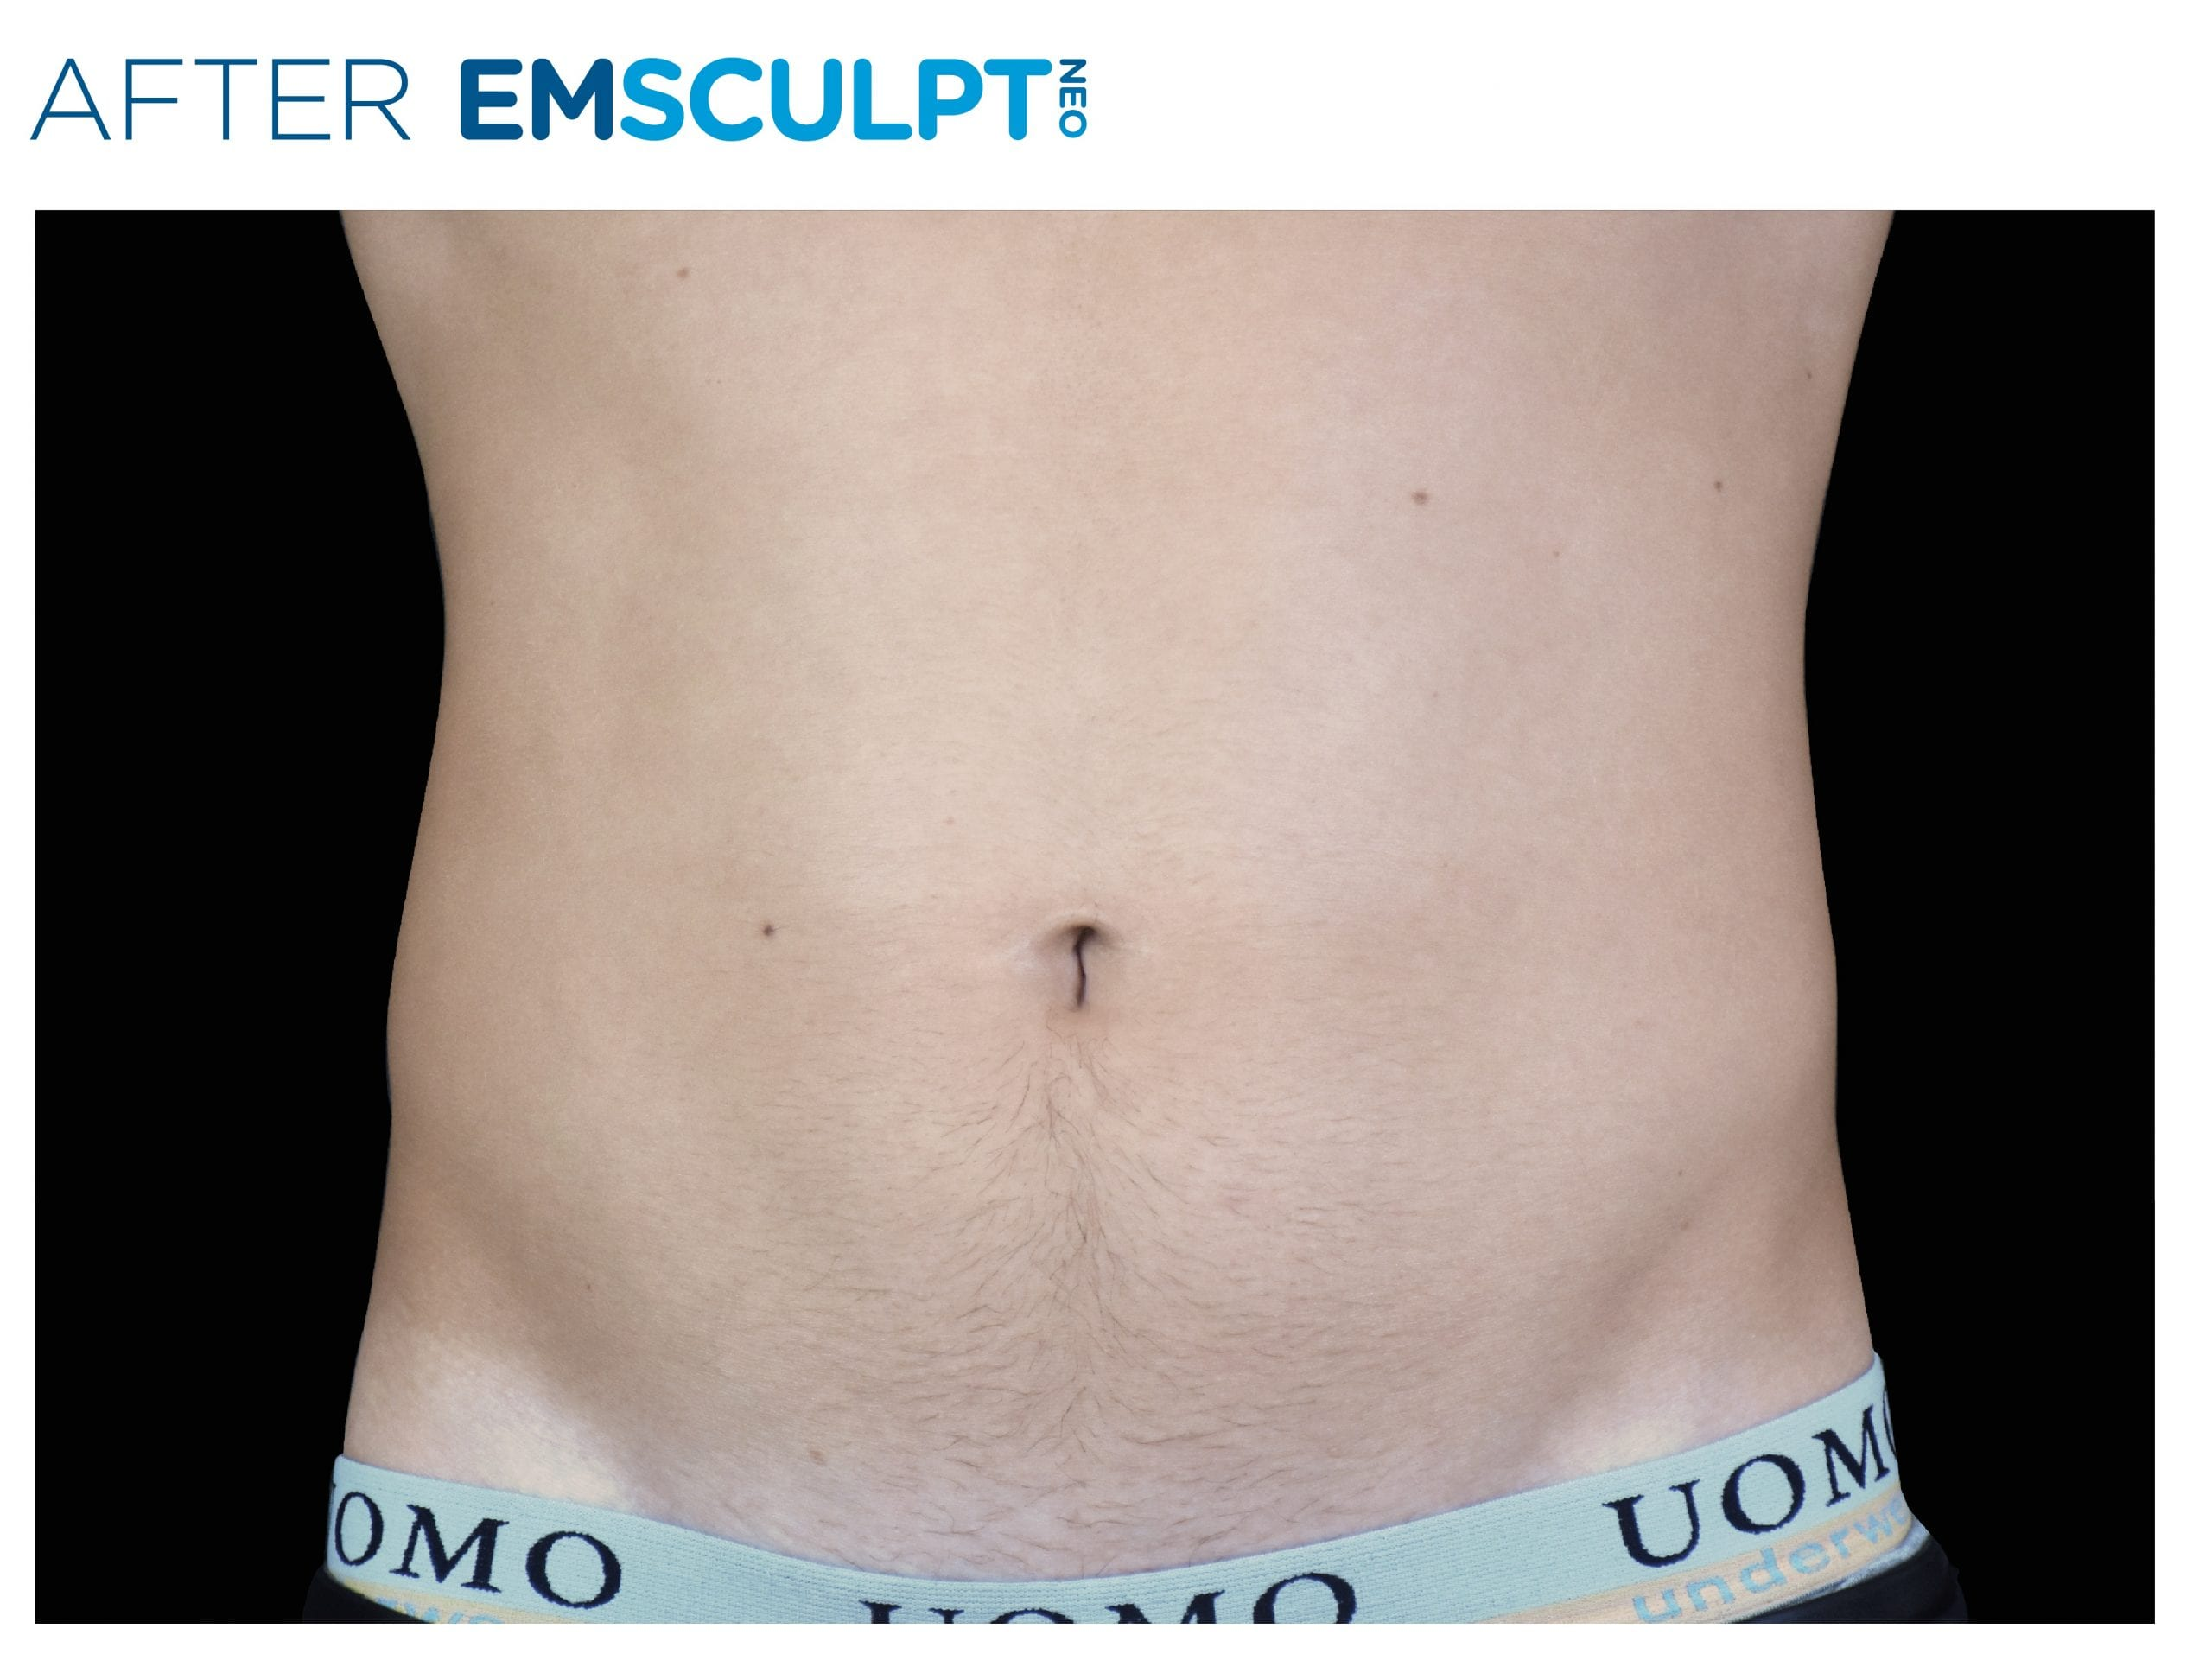 Emsculpt Neo Treatment After picture man's belly